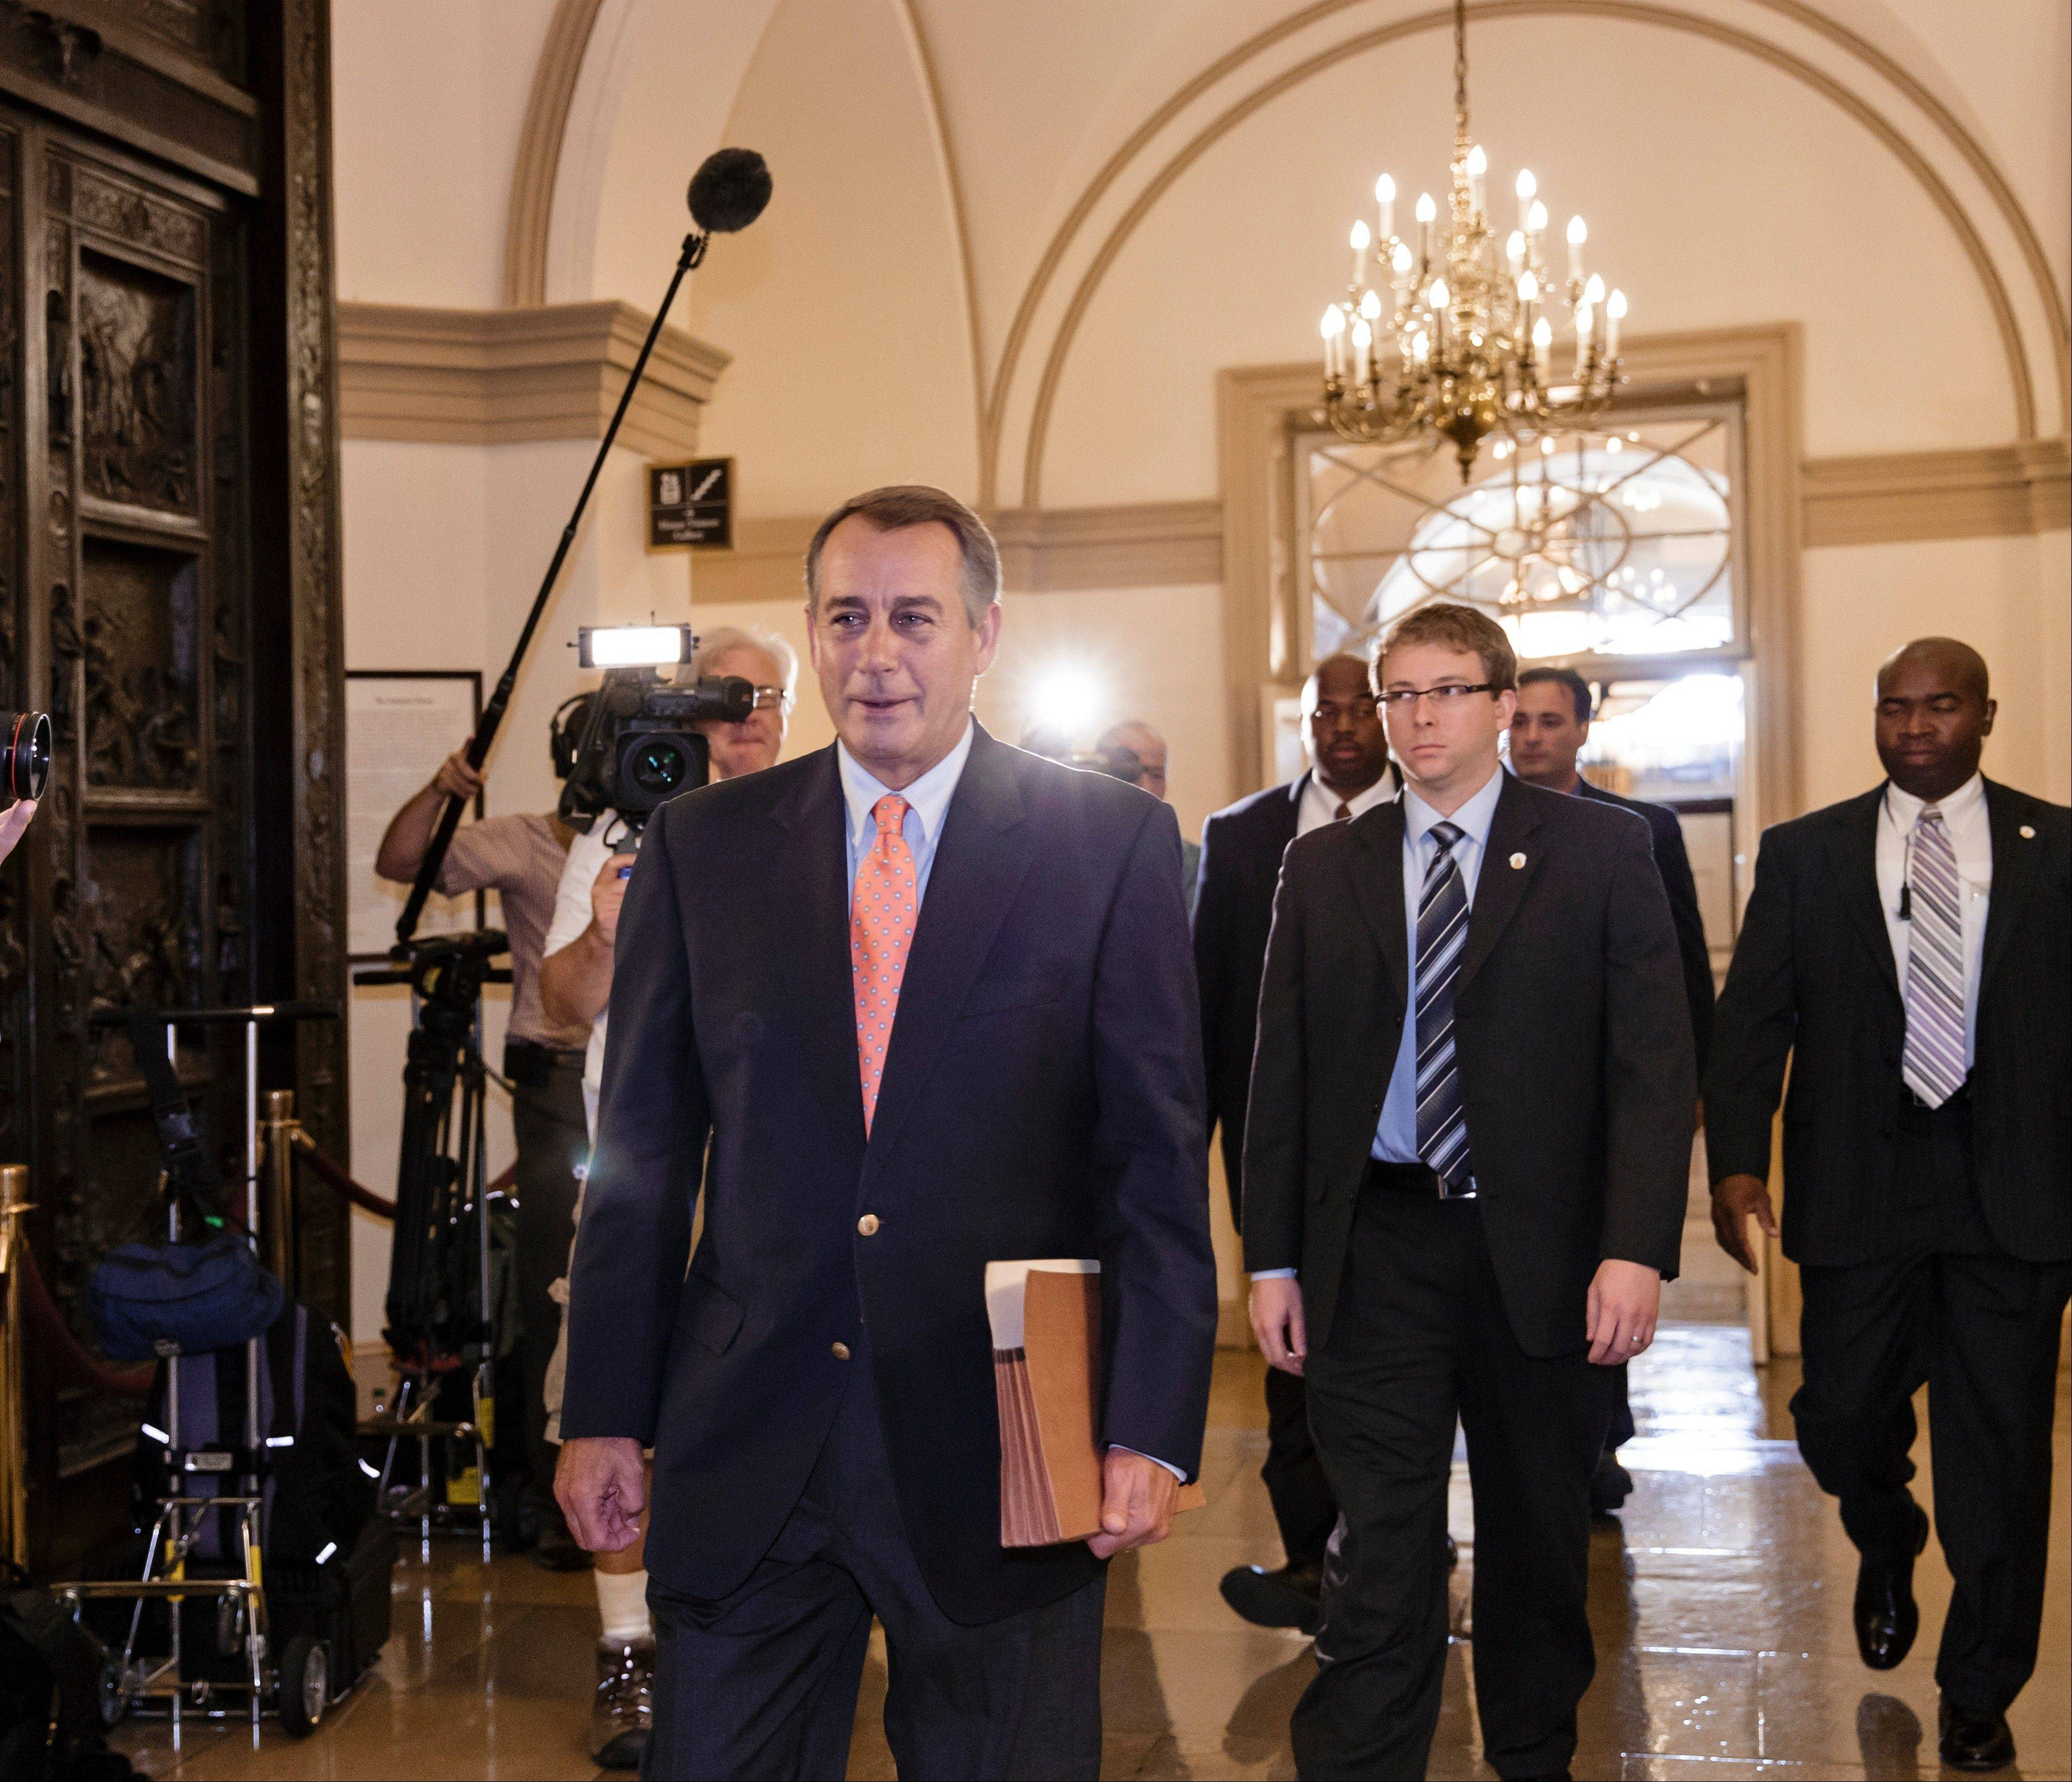 Speaker of the House John Boehner, R-Ohio, arrives at the Capitol in Washington, Saturday. The Republican-controlled House and the Democrat-controlled Senate are at an impasse, neither side backing down, after House GOP conservatives linked the funding bill to President Obama's existent health care law.